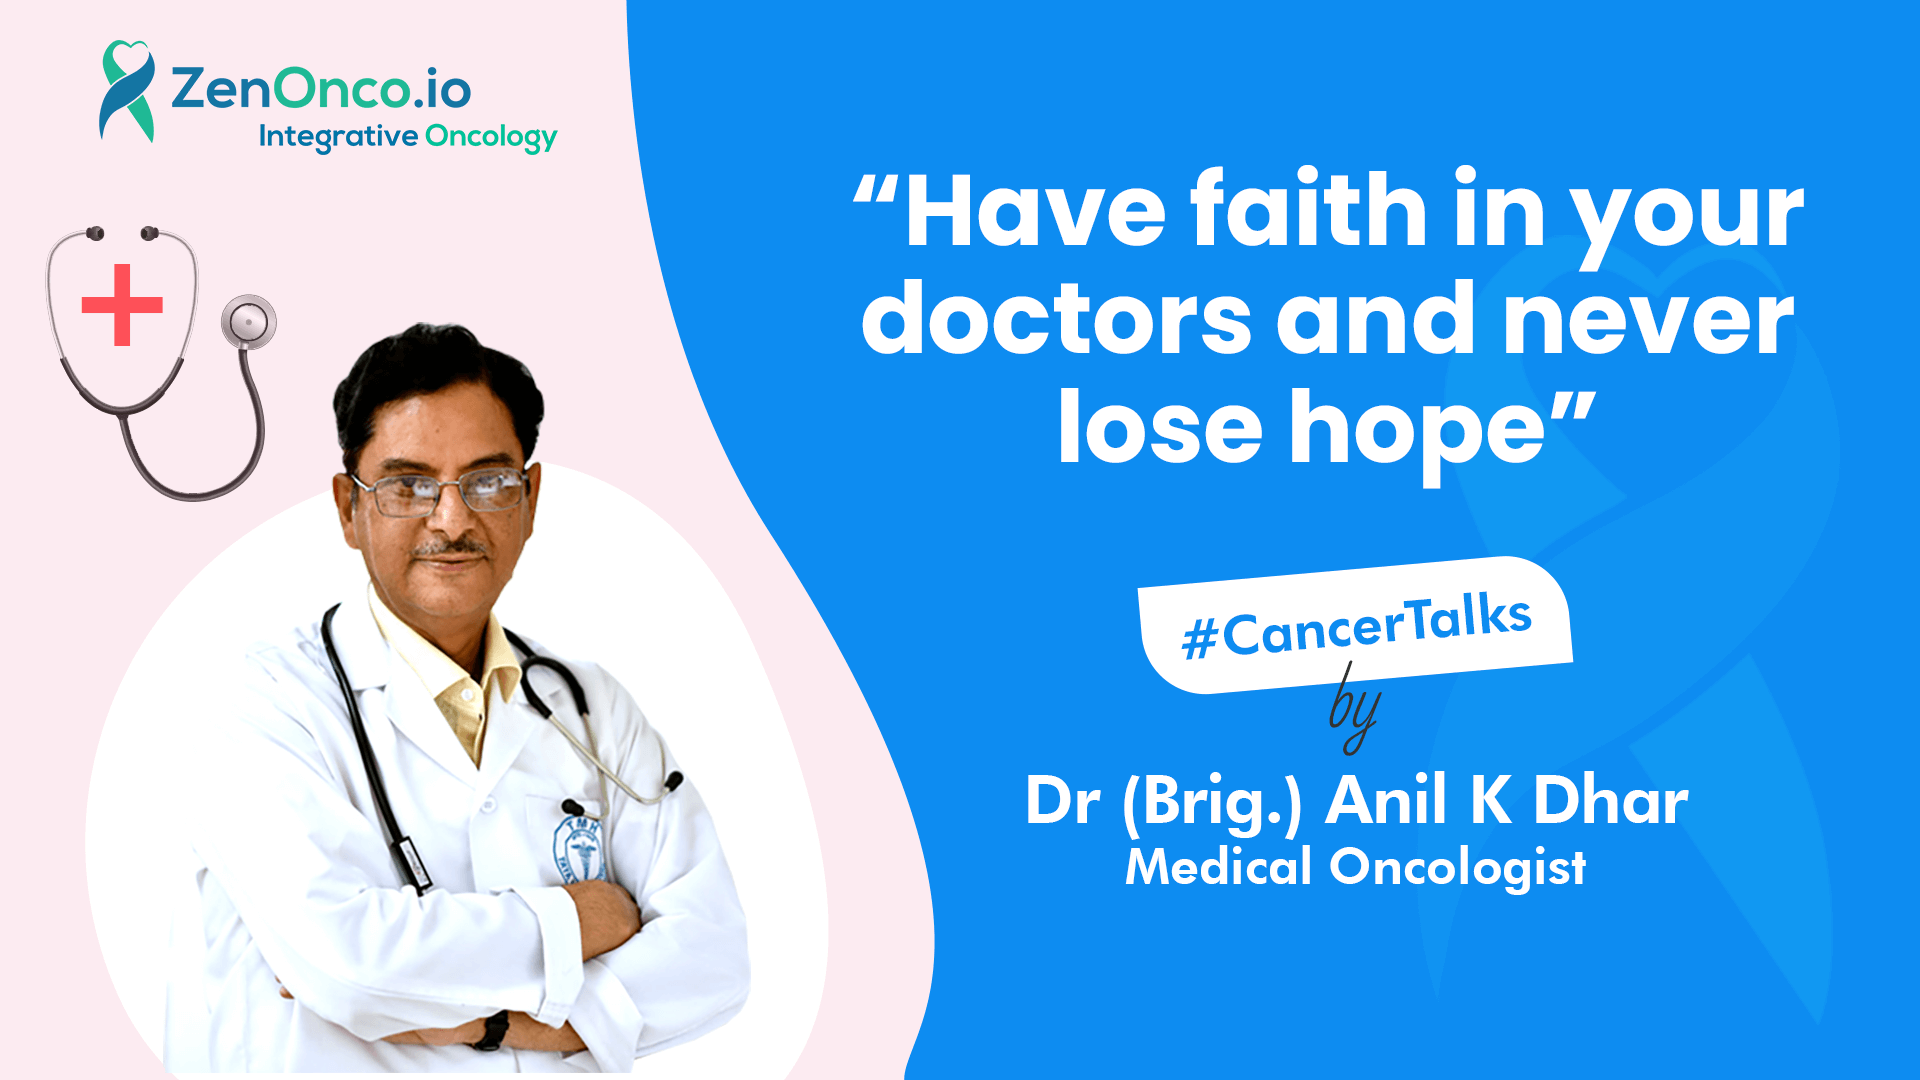 Interview with Dr (Brig.) A K Dhar: Have faith in your doctors